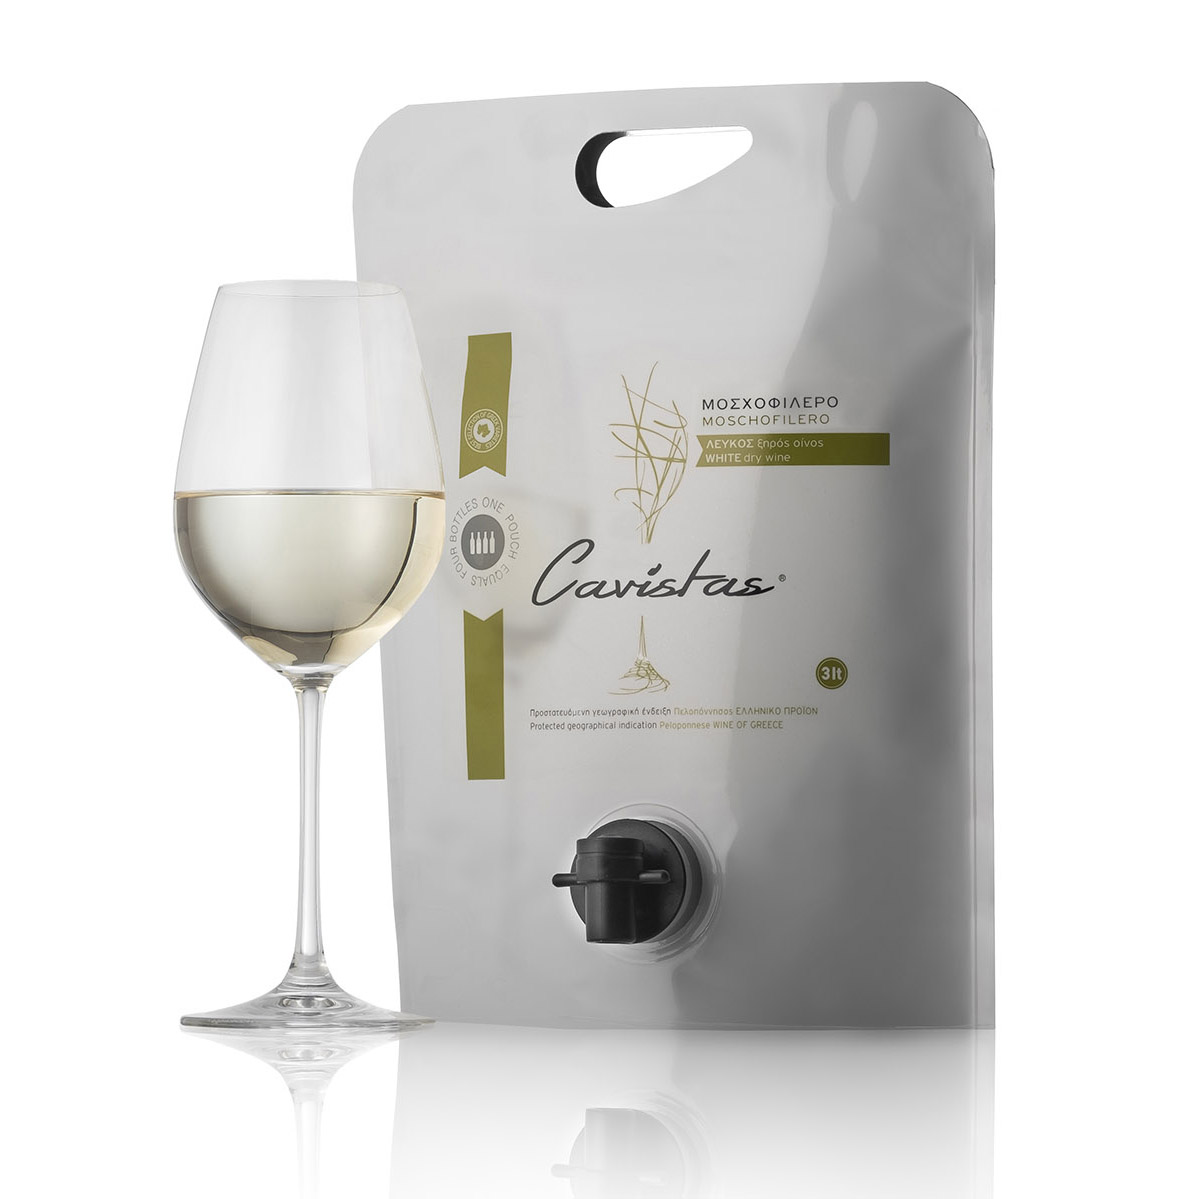 cavistas-moschofilero-glass-1200